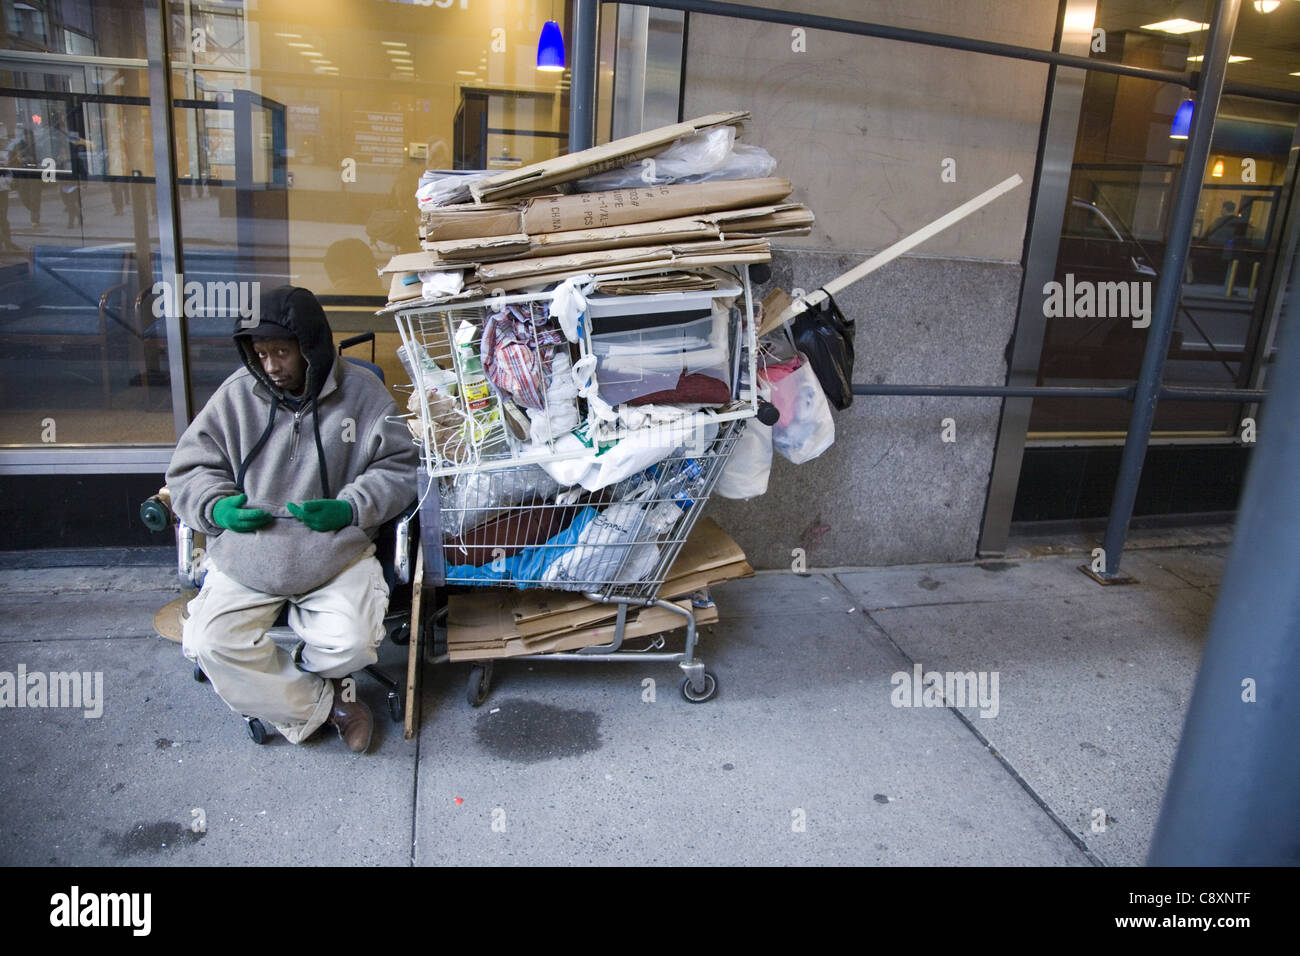 Homeless man with his possessions on 34th Street in New York City. - Stock Image